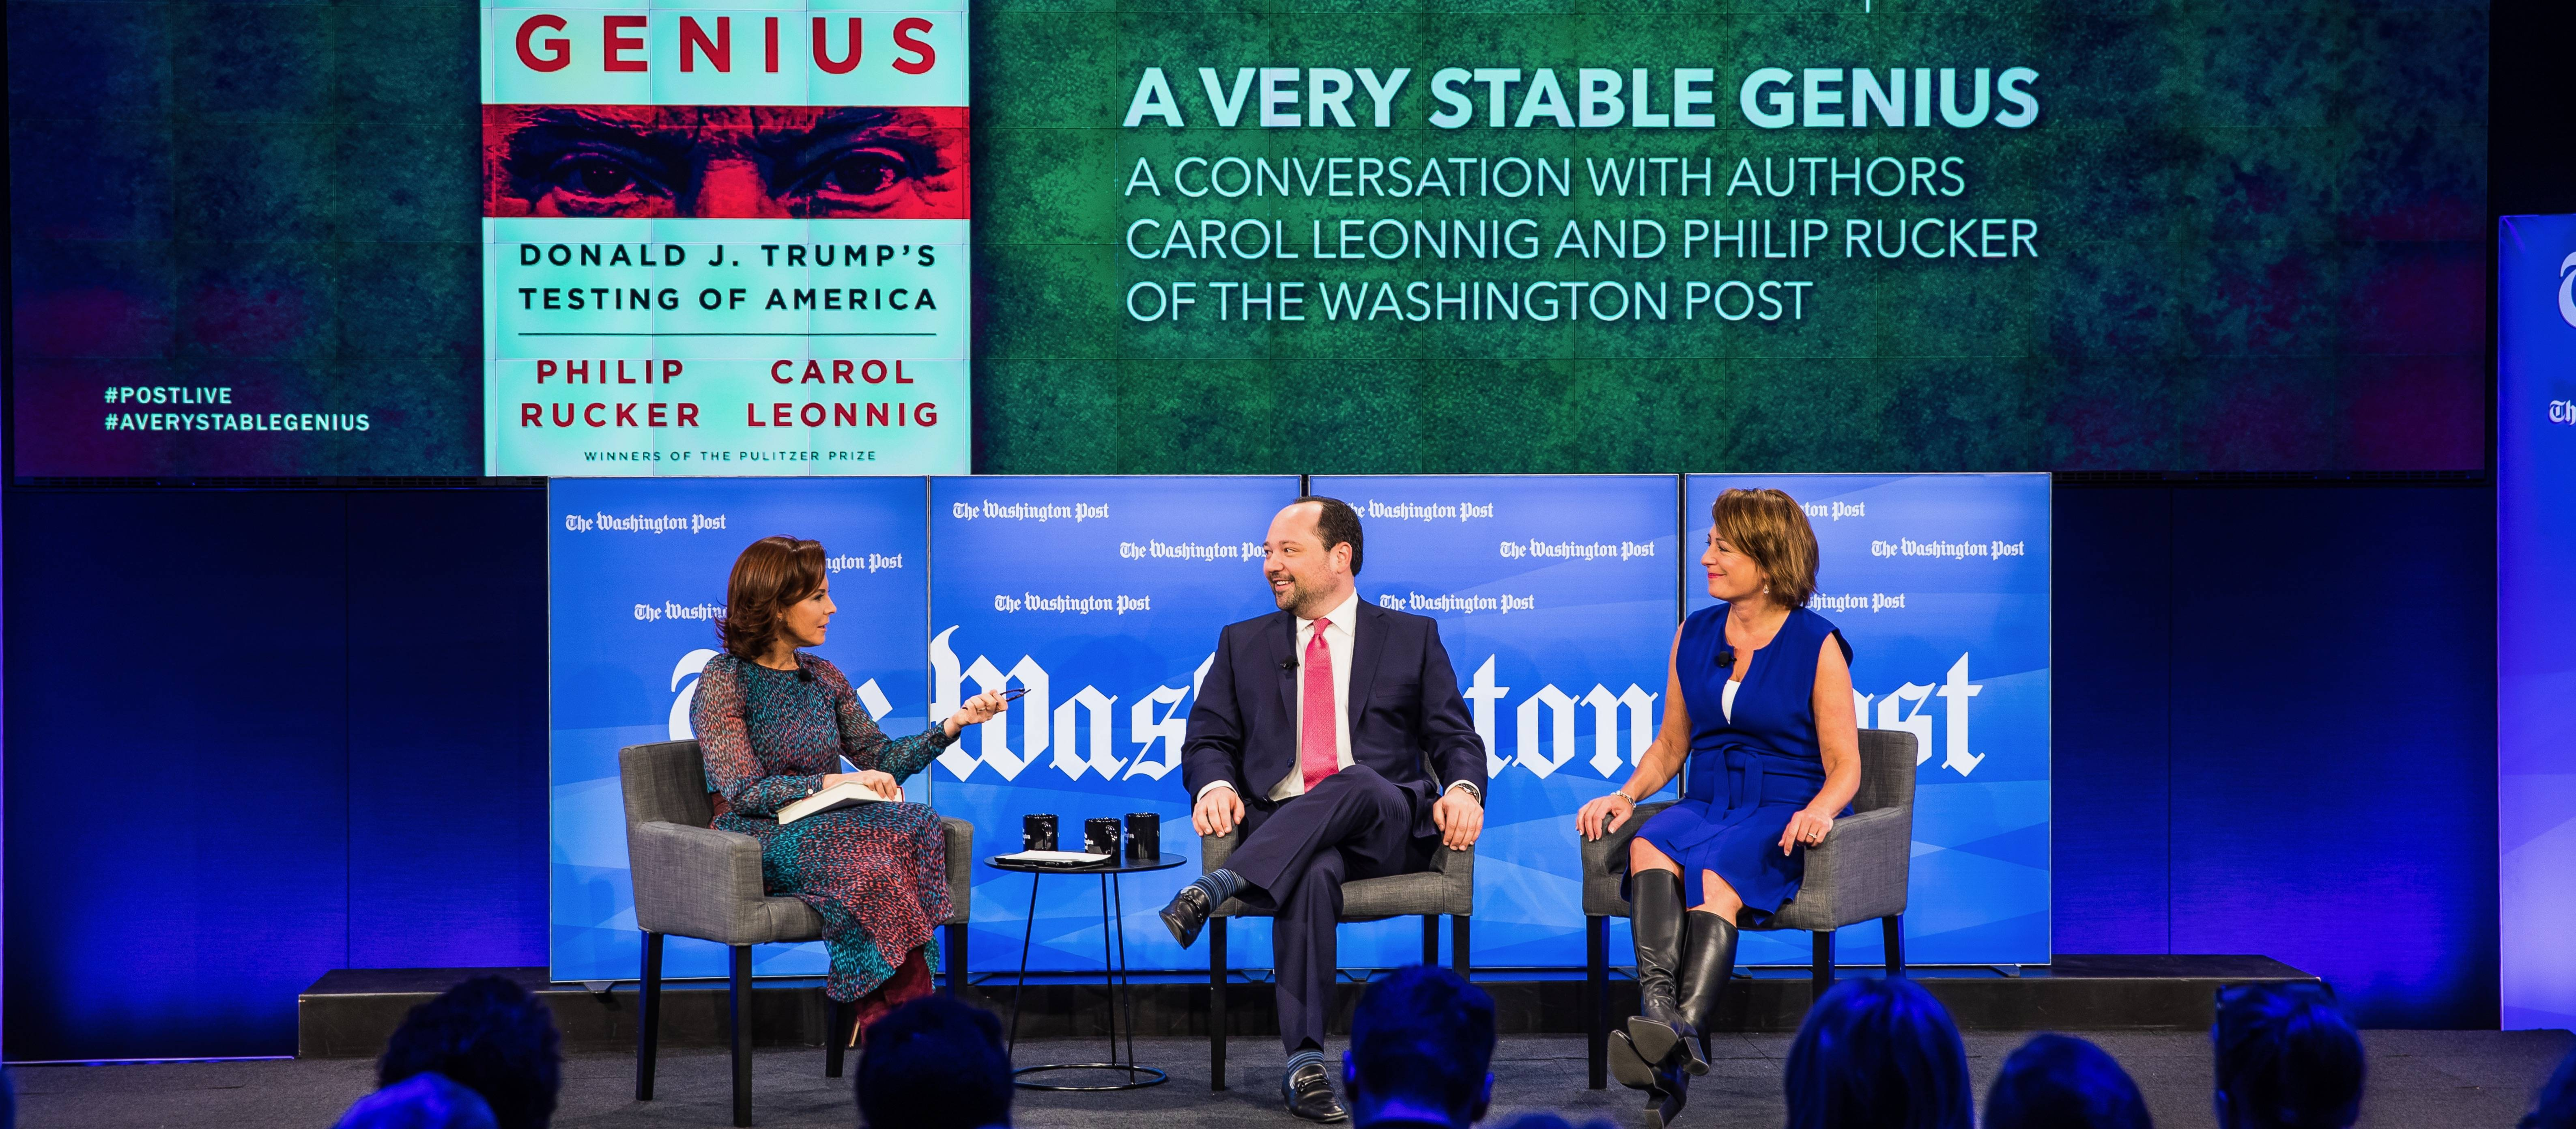 """The Washington Post Live hosts a conversation with The Post's White House Bureau Chief Philip Rucker and National Investigative Reporter Carol Leonnig about their book """"A Very Stable Genius"""" on Jan. 24, 2020. (Kaz Sasahara/The Washington Post)"""